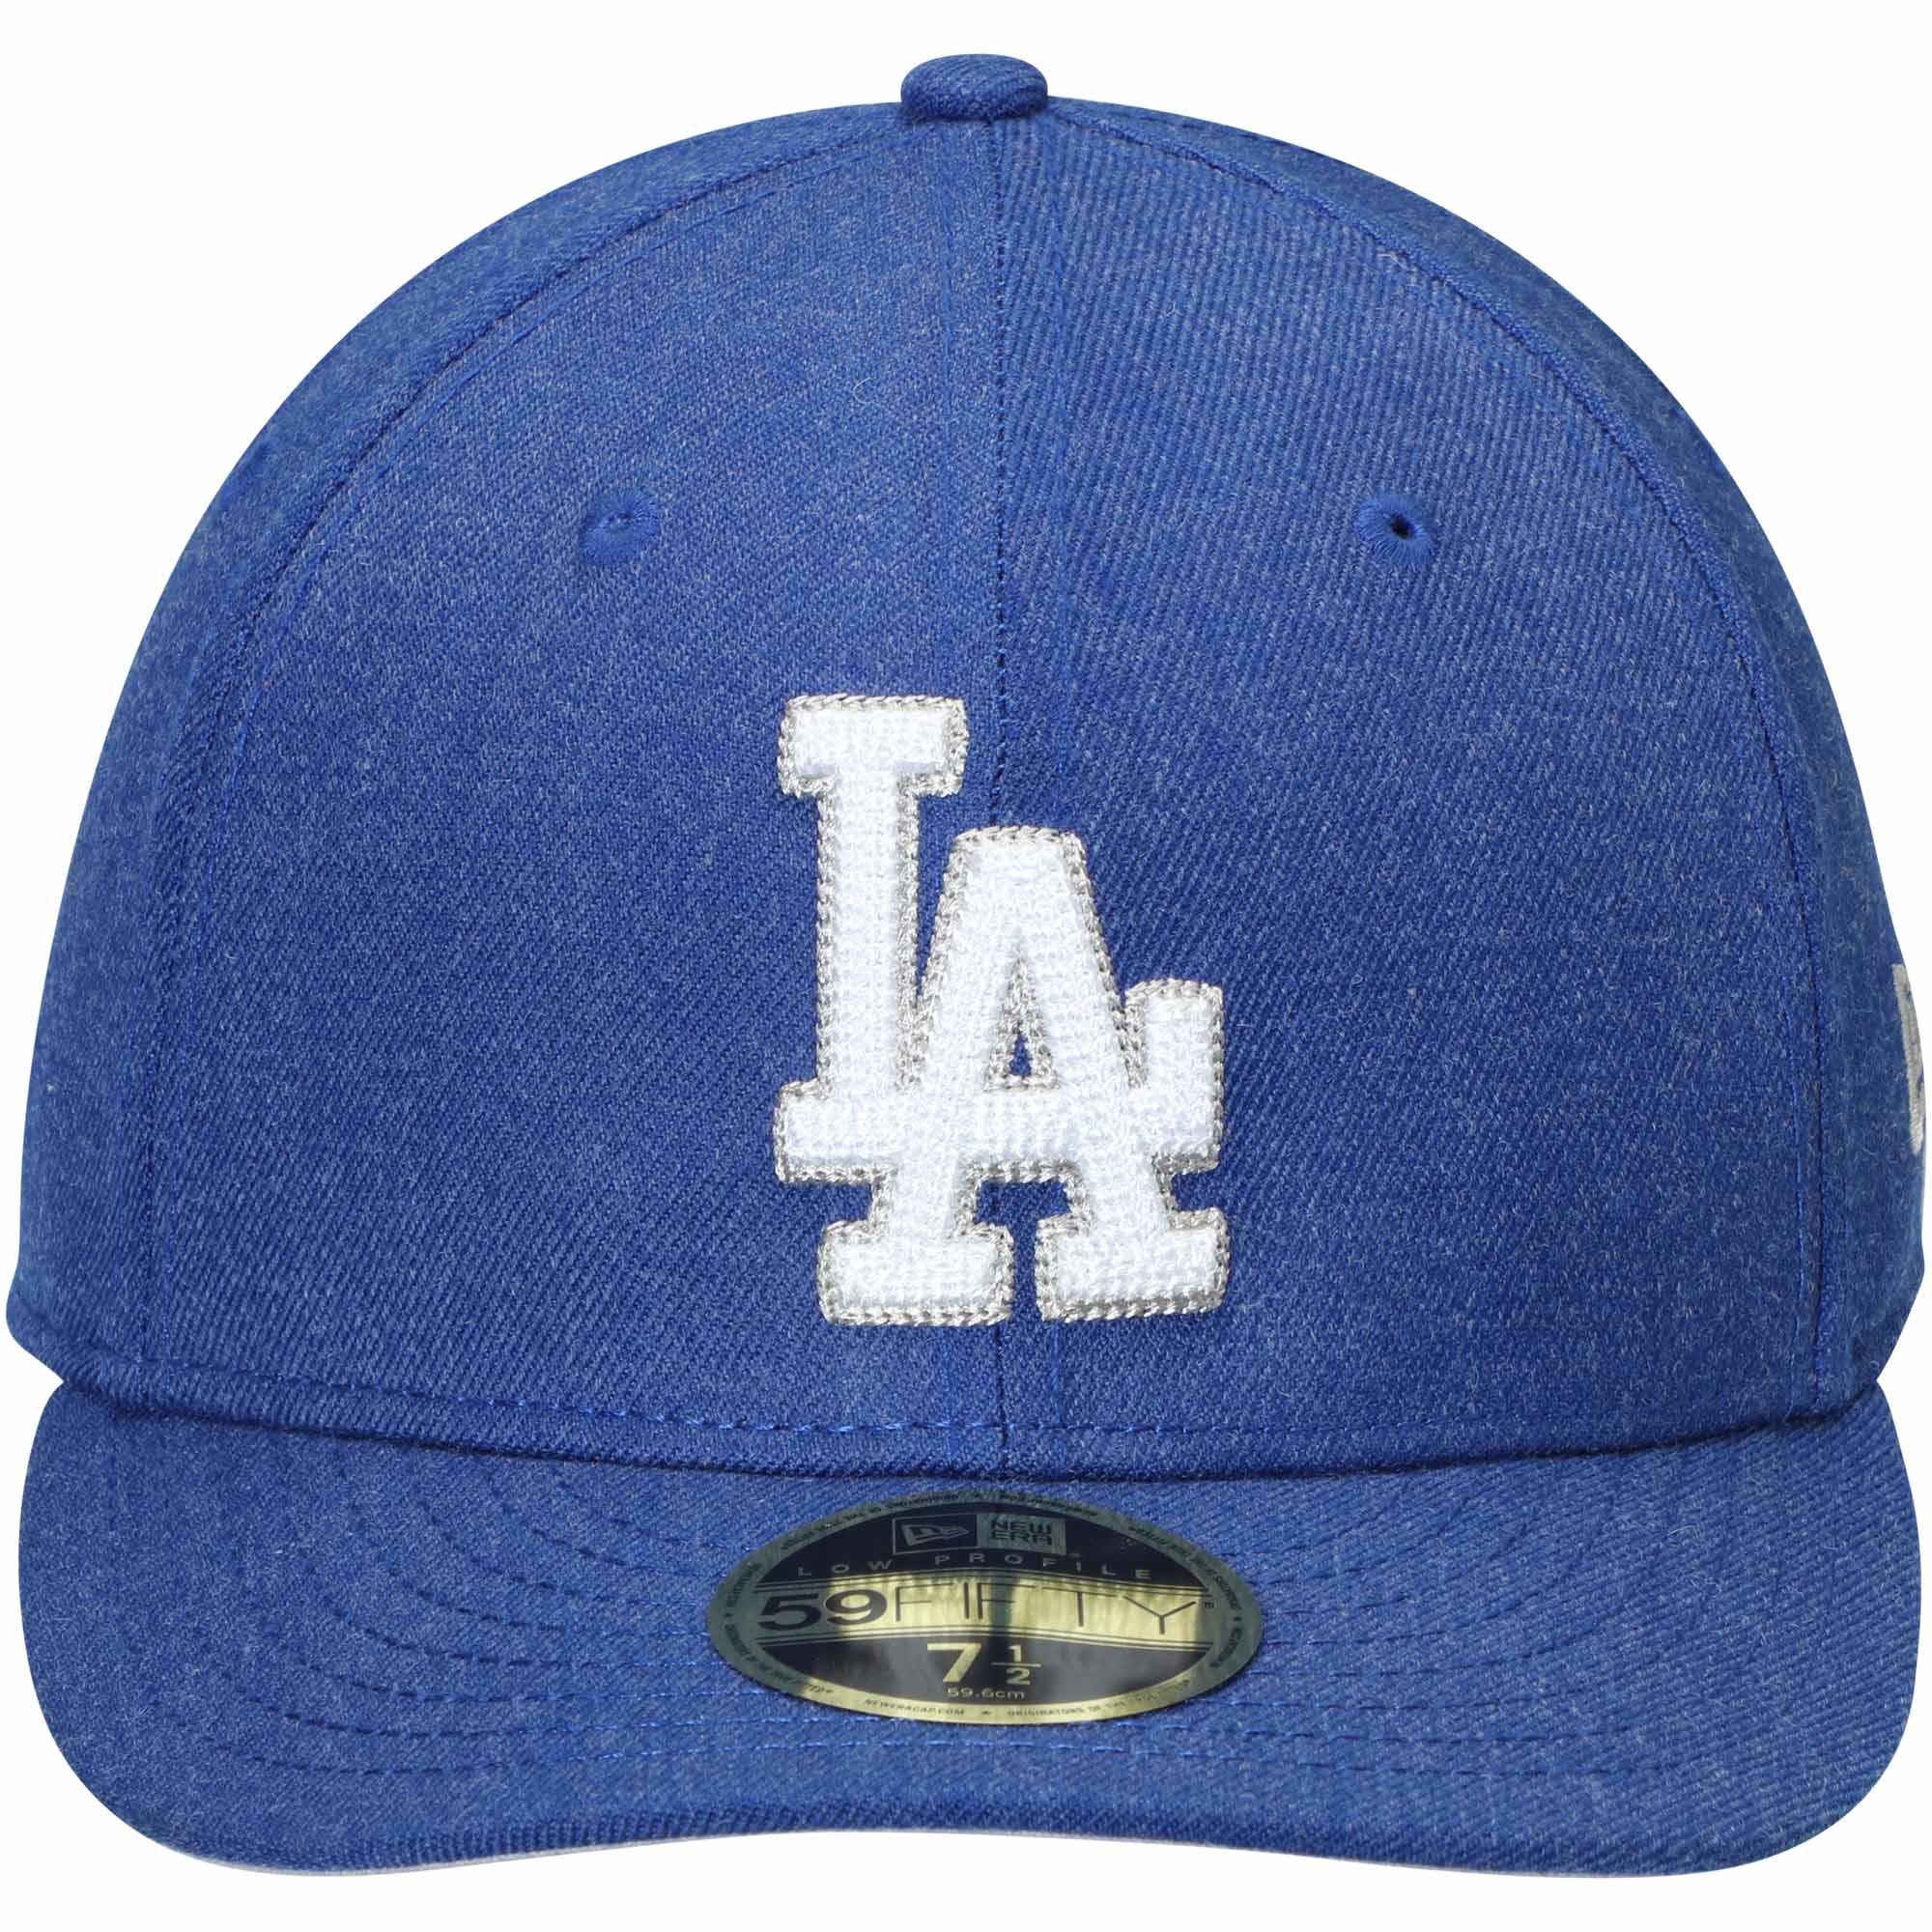 quality design 2d894 d000e ... store los angeles dodgers new era crisp low profile 59fifty fitted hat  heathered royal walmart 7d3e9